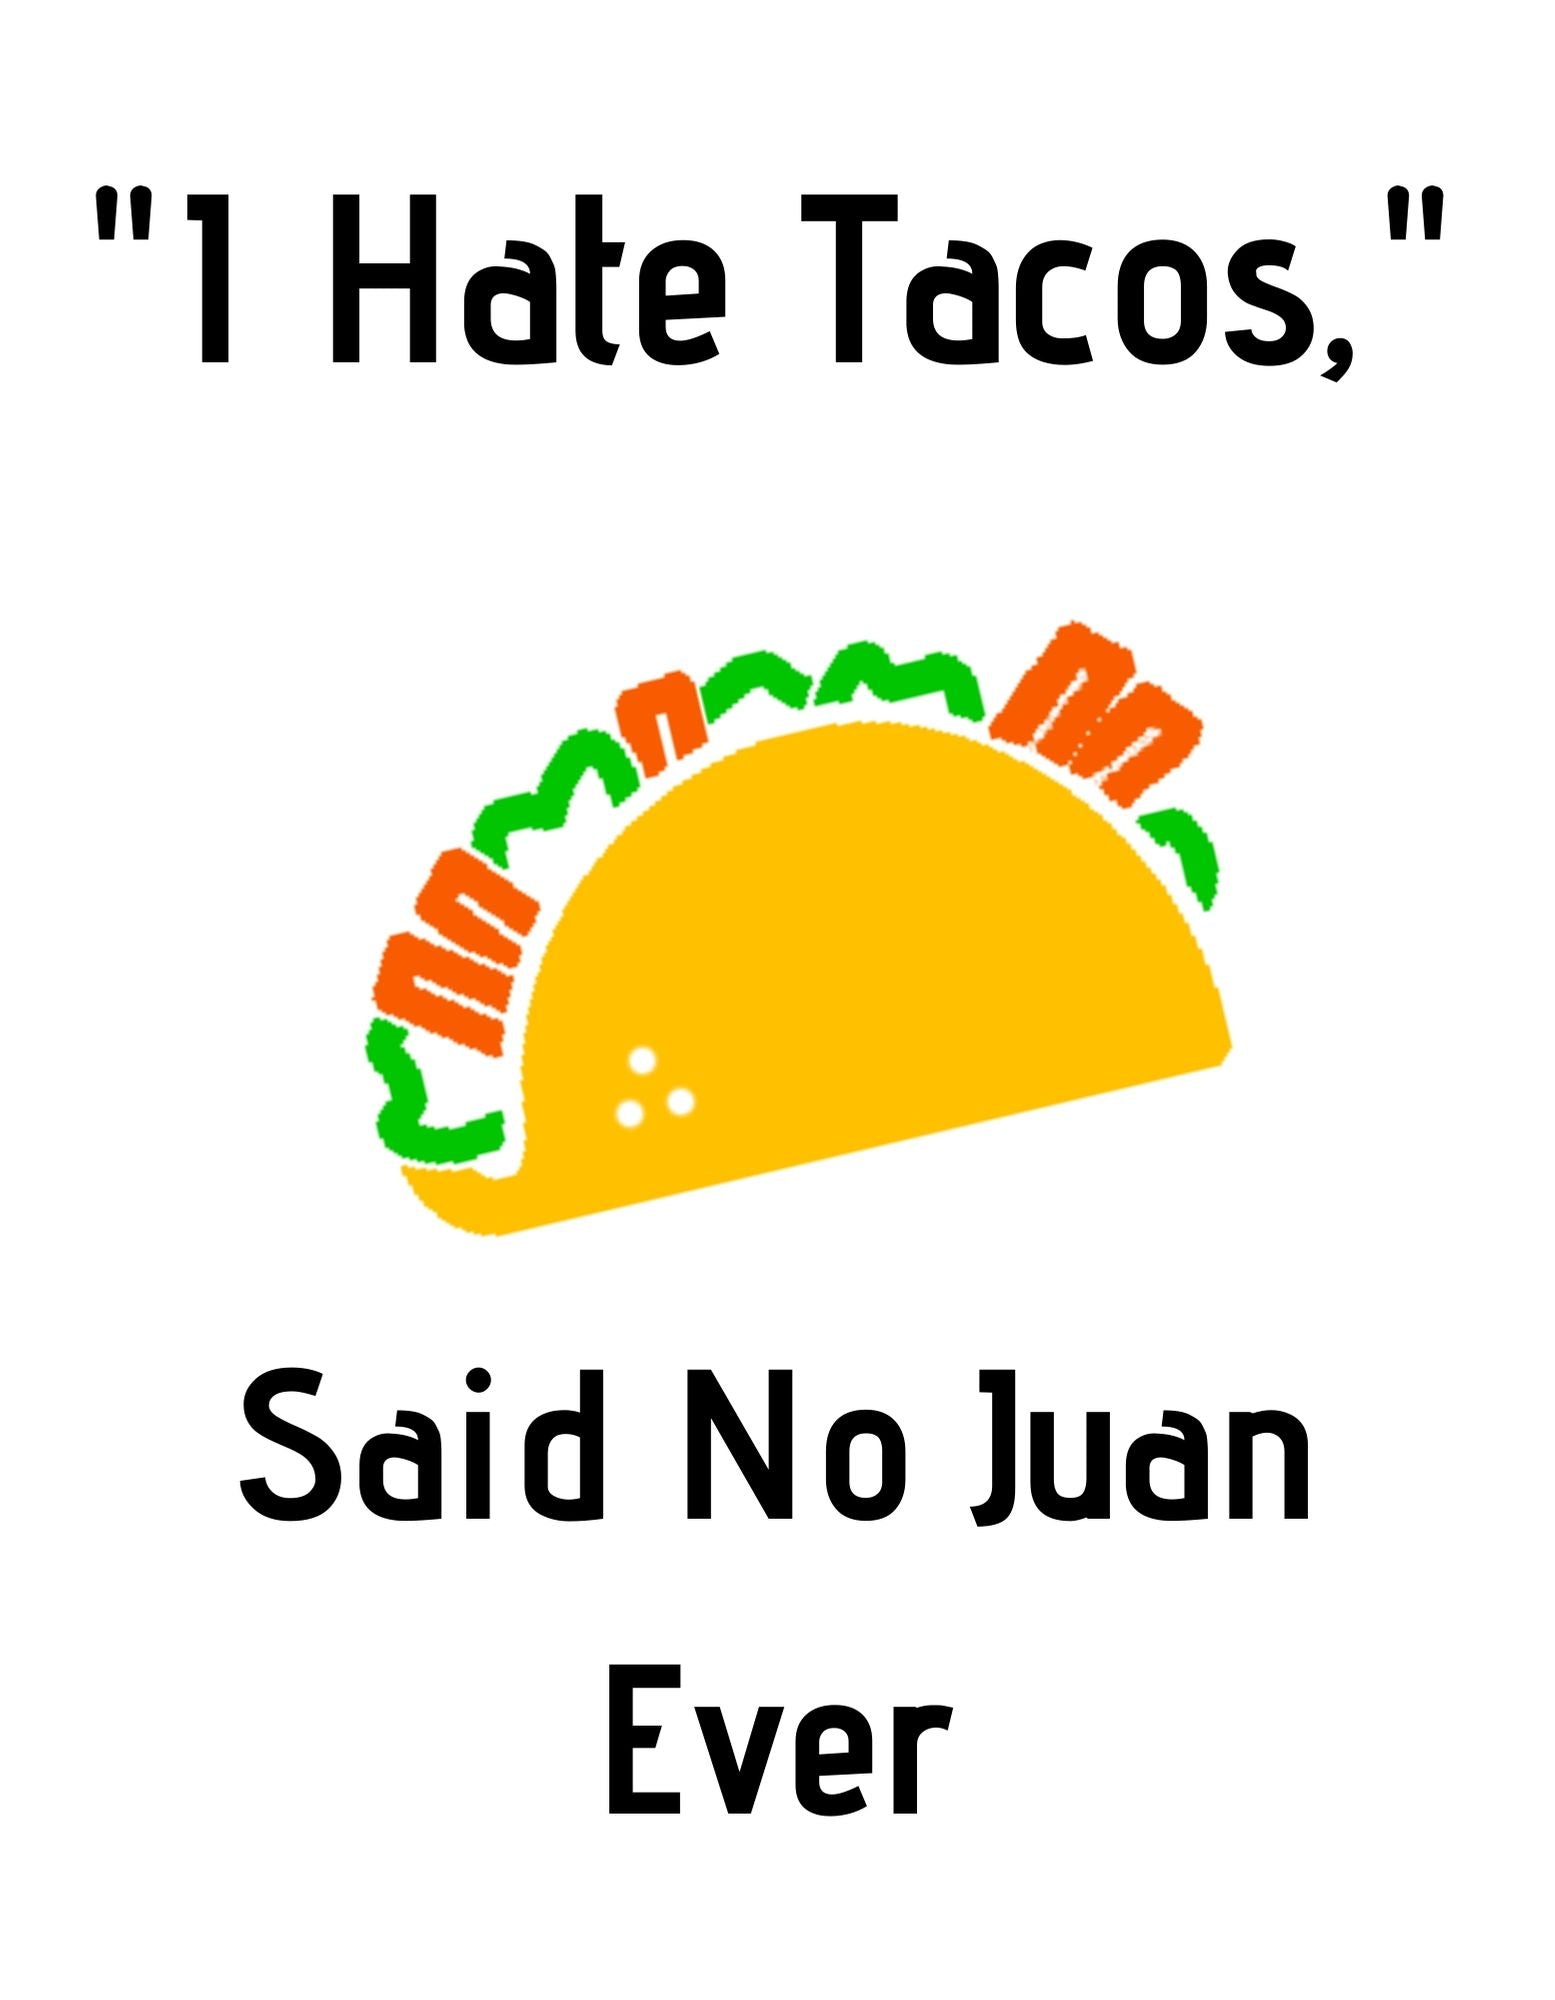 I Hate Tacos, Said No Juan Ever